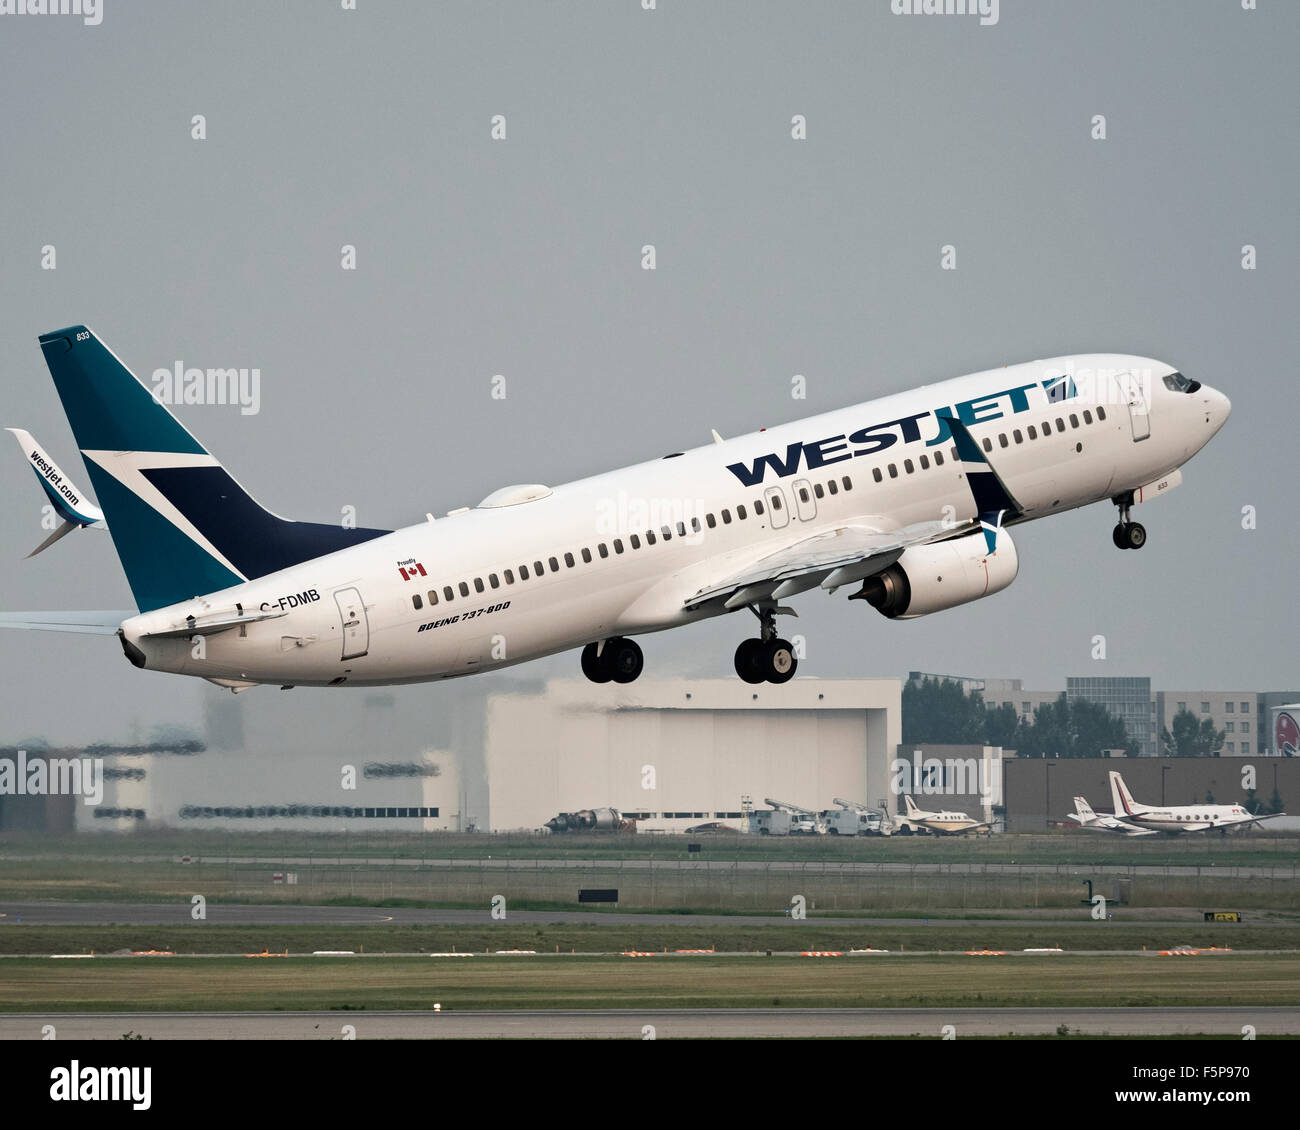 A Westjet Boeing 737-800 (C-FDMB) jetliner takes off from Calgary International Airport - Stock Image